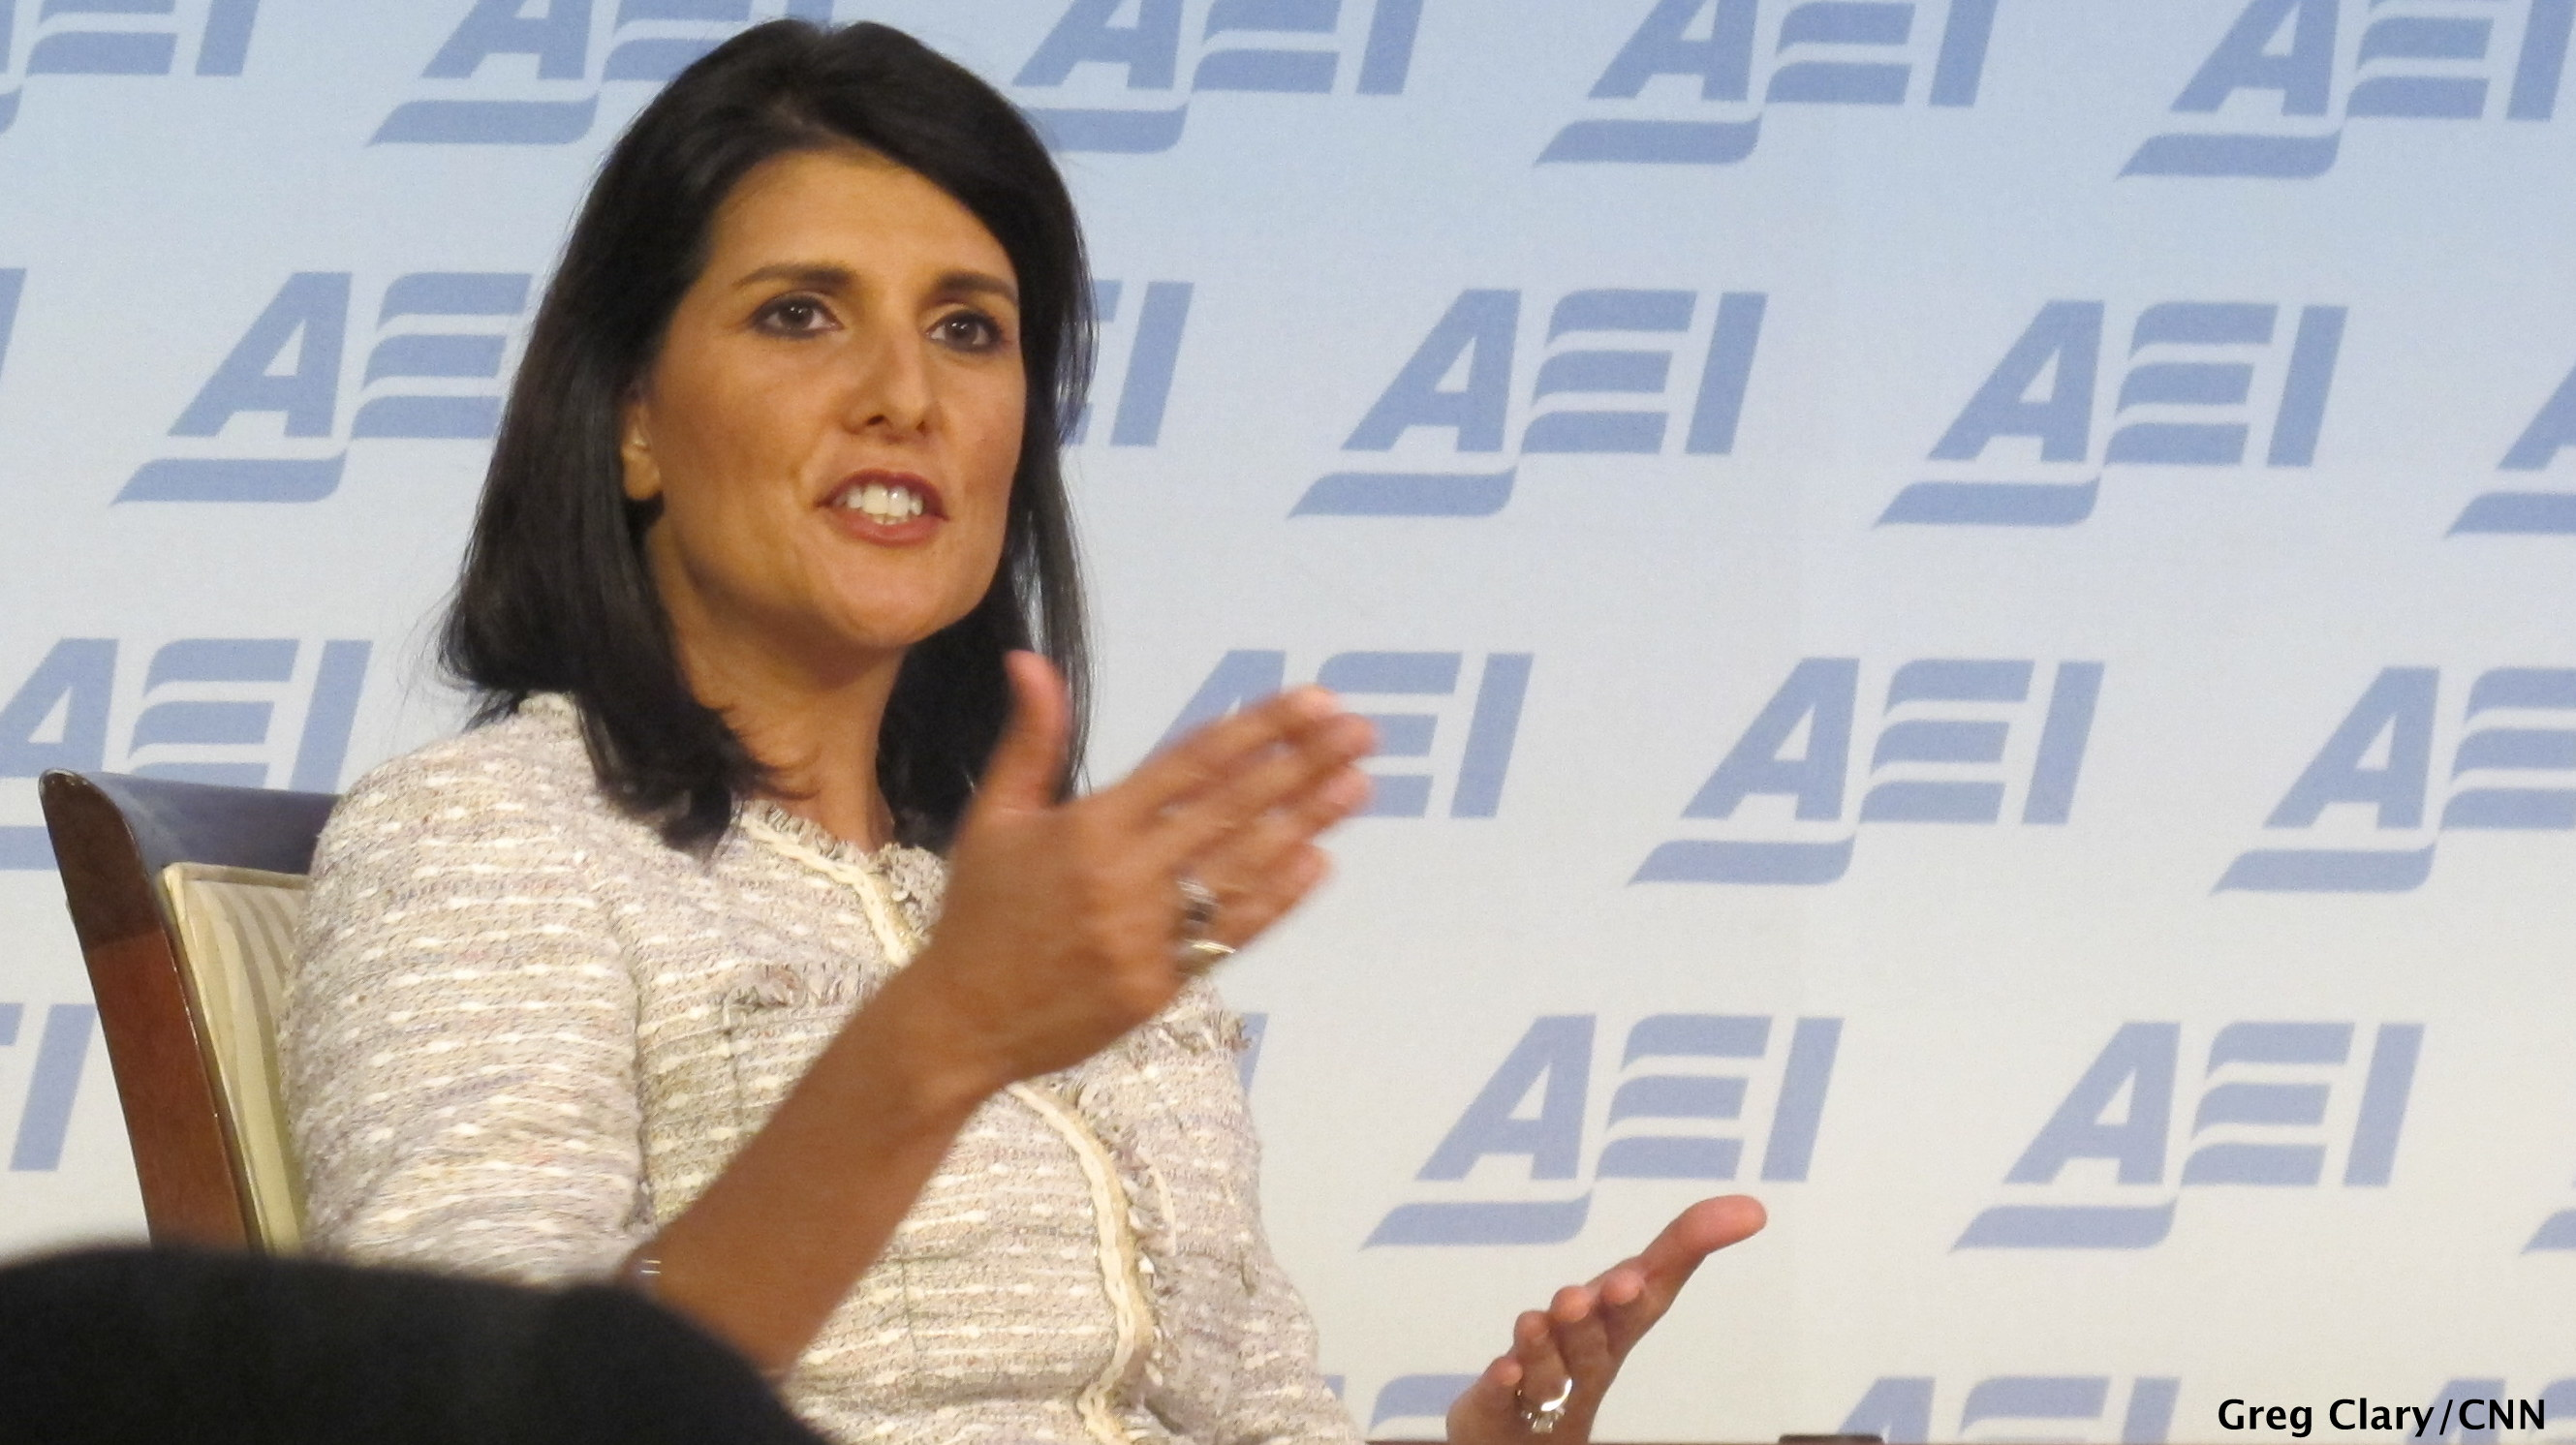 Haley to campaign with Walker in Wisconsin